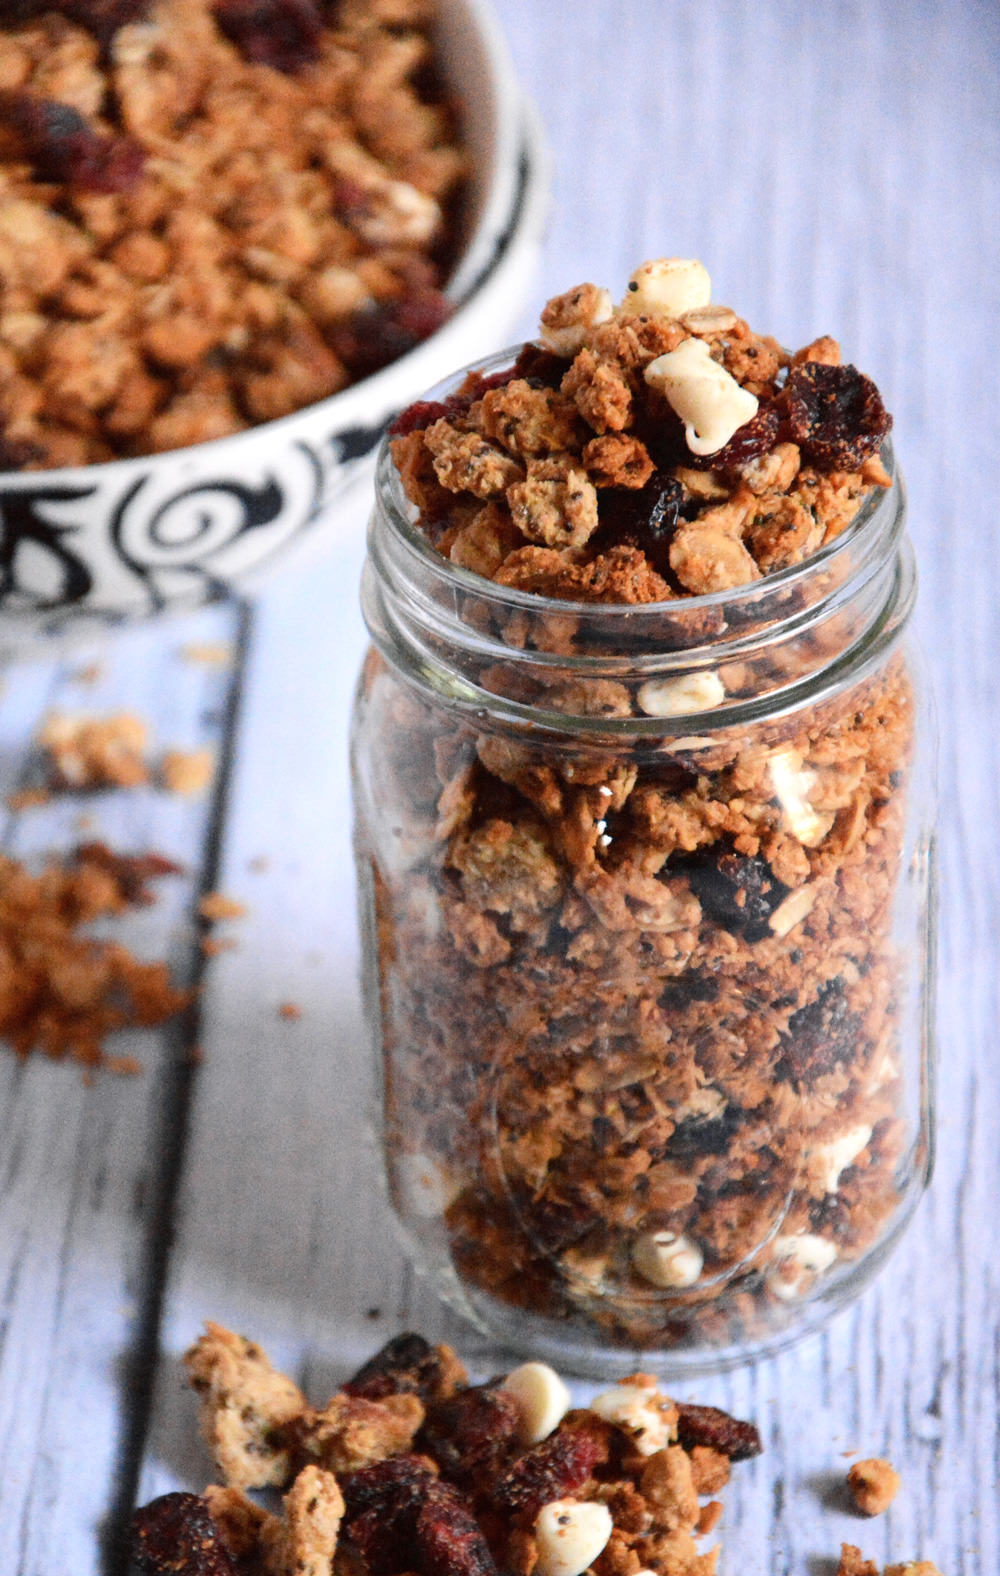 White Chocolate & Cranberry Quinoa Granola | The Housewife in Training Files